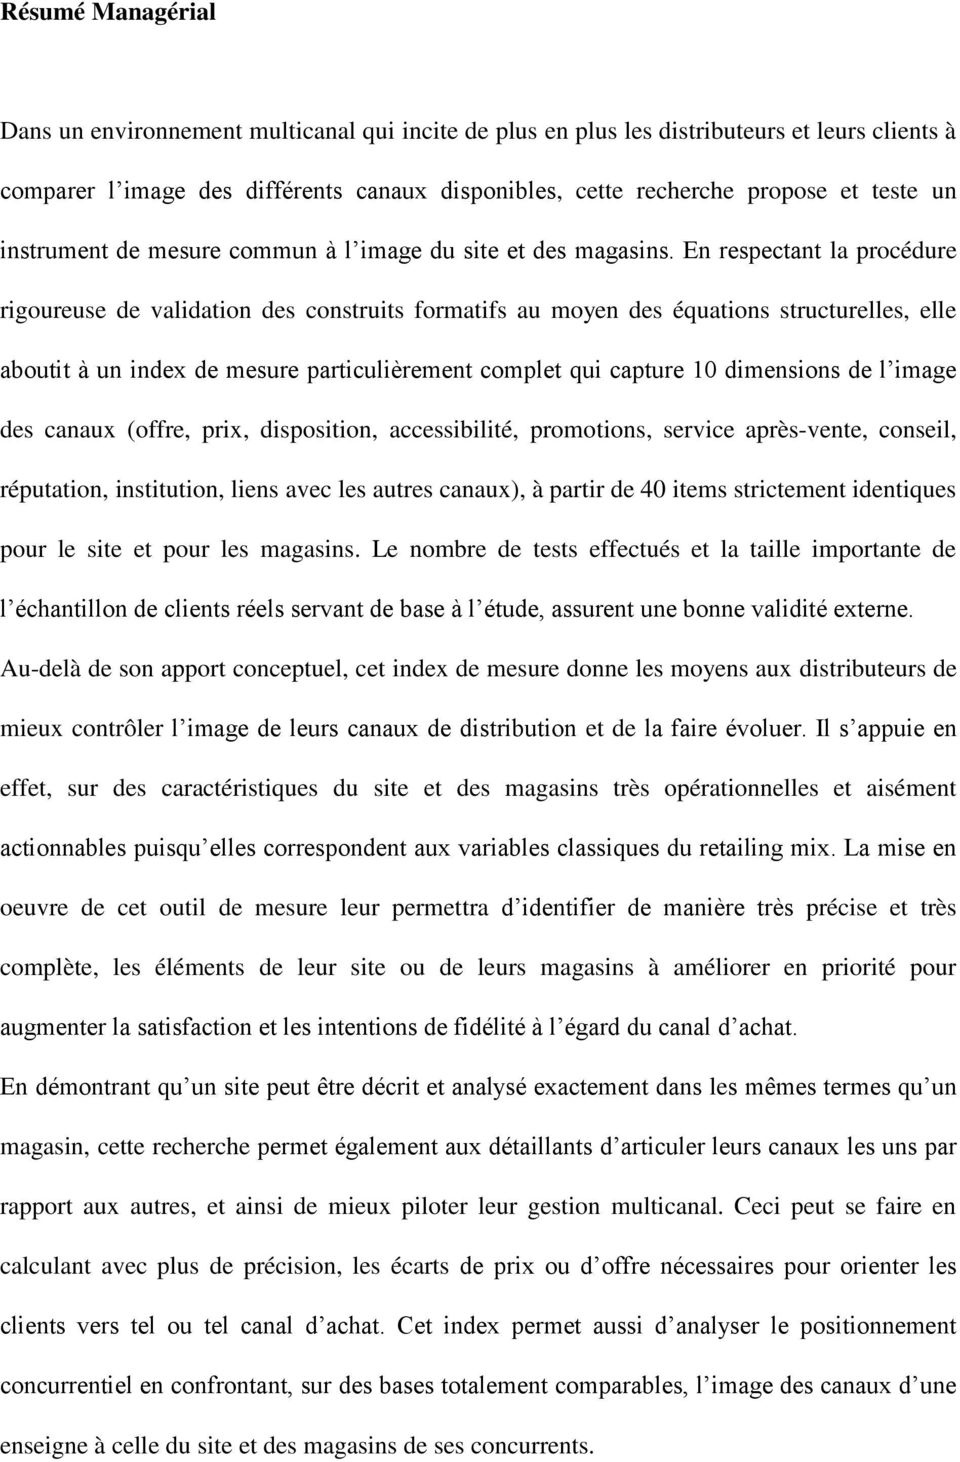 En respectant la procédure rigoureuse de validation des construits formatifs au moyen des équations structurelles, elle aboutit à un index de mesure particulièrement complet qui capture 10 dimensions